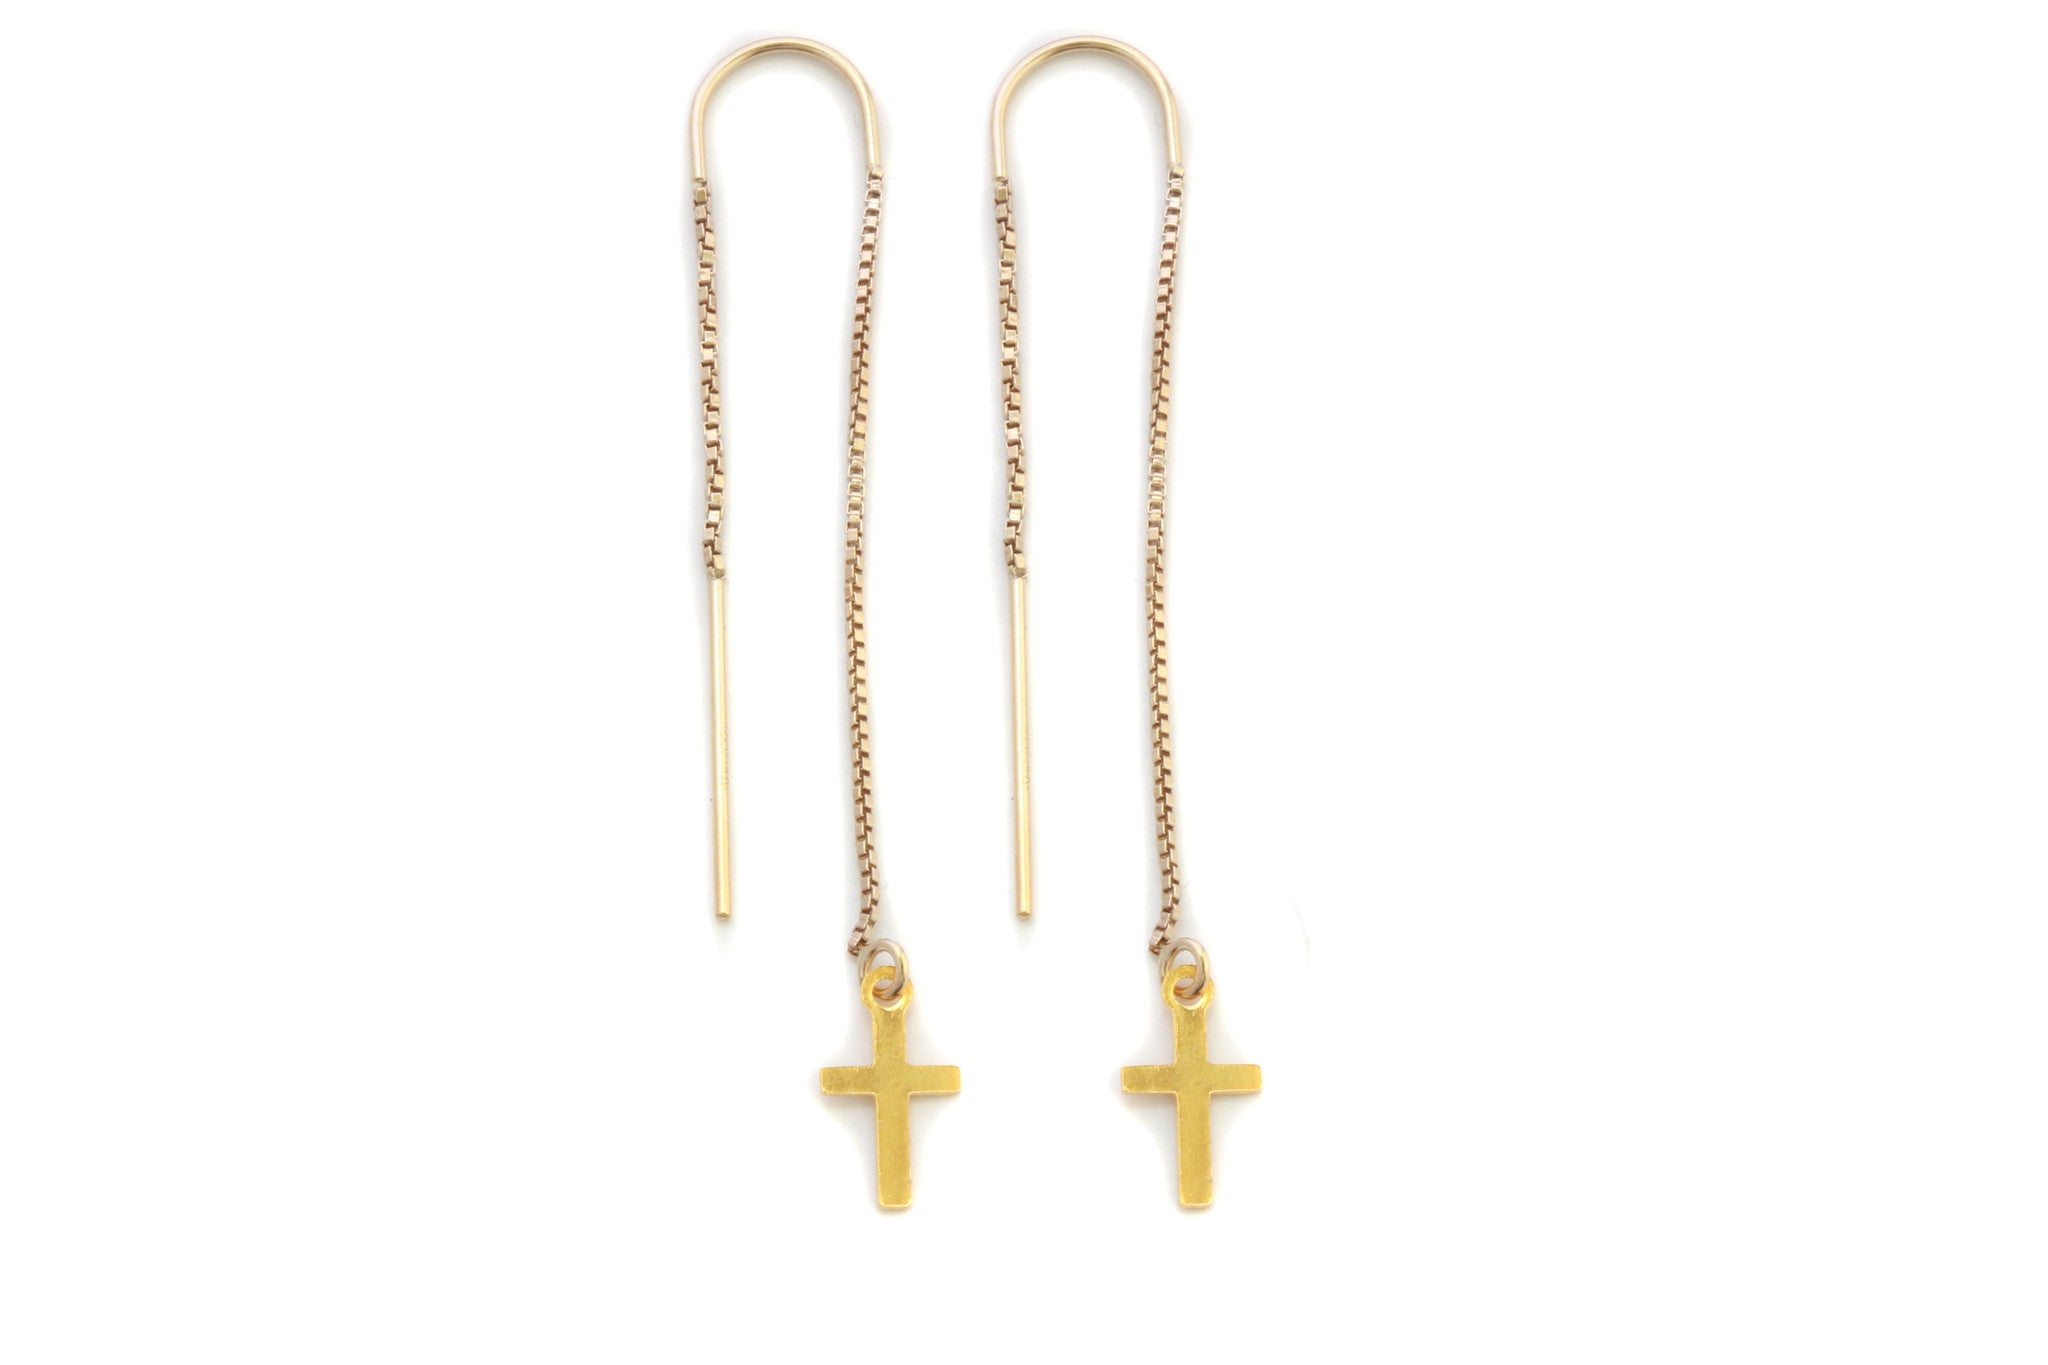 14k Gold Cross Threader Earrings